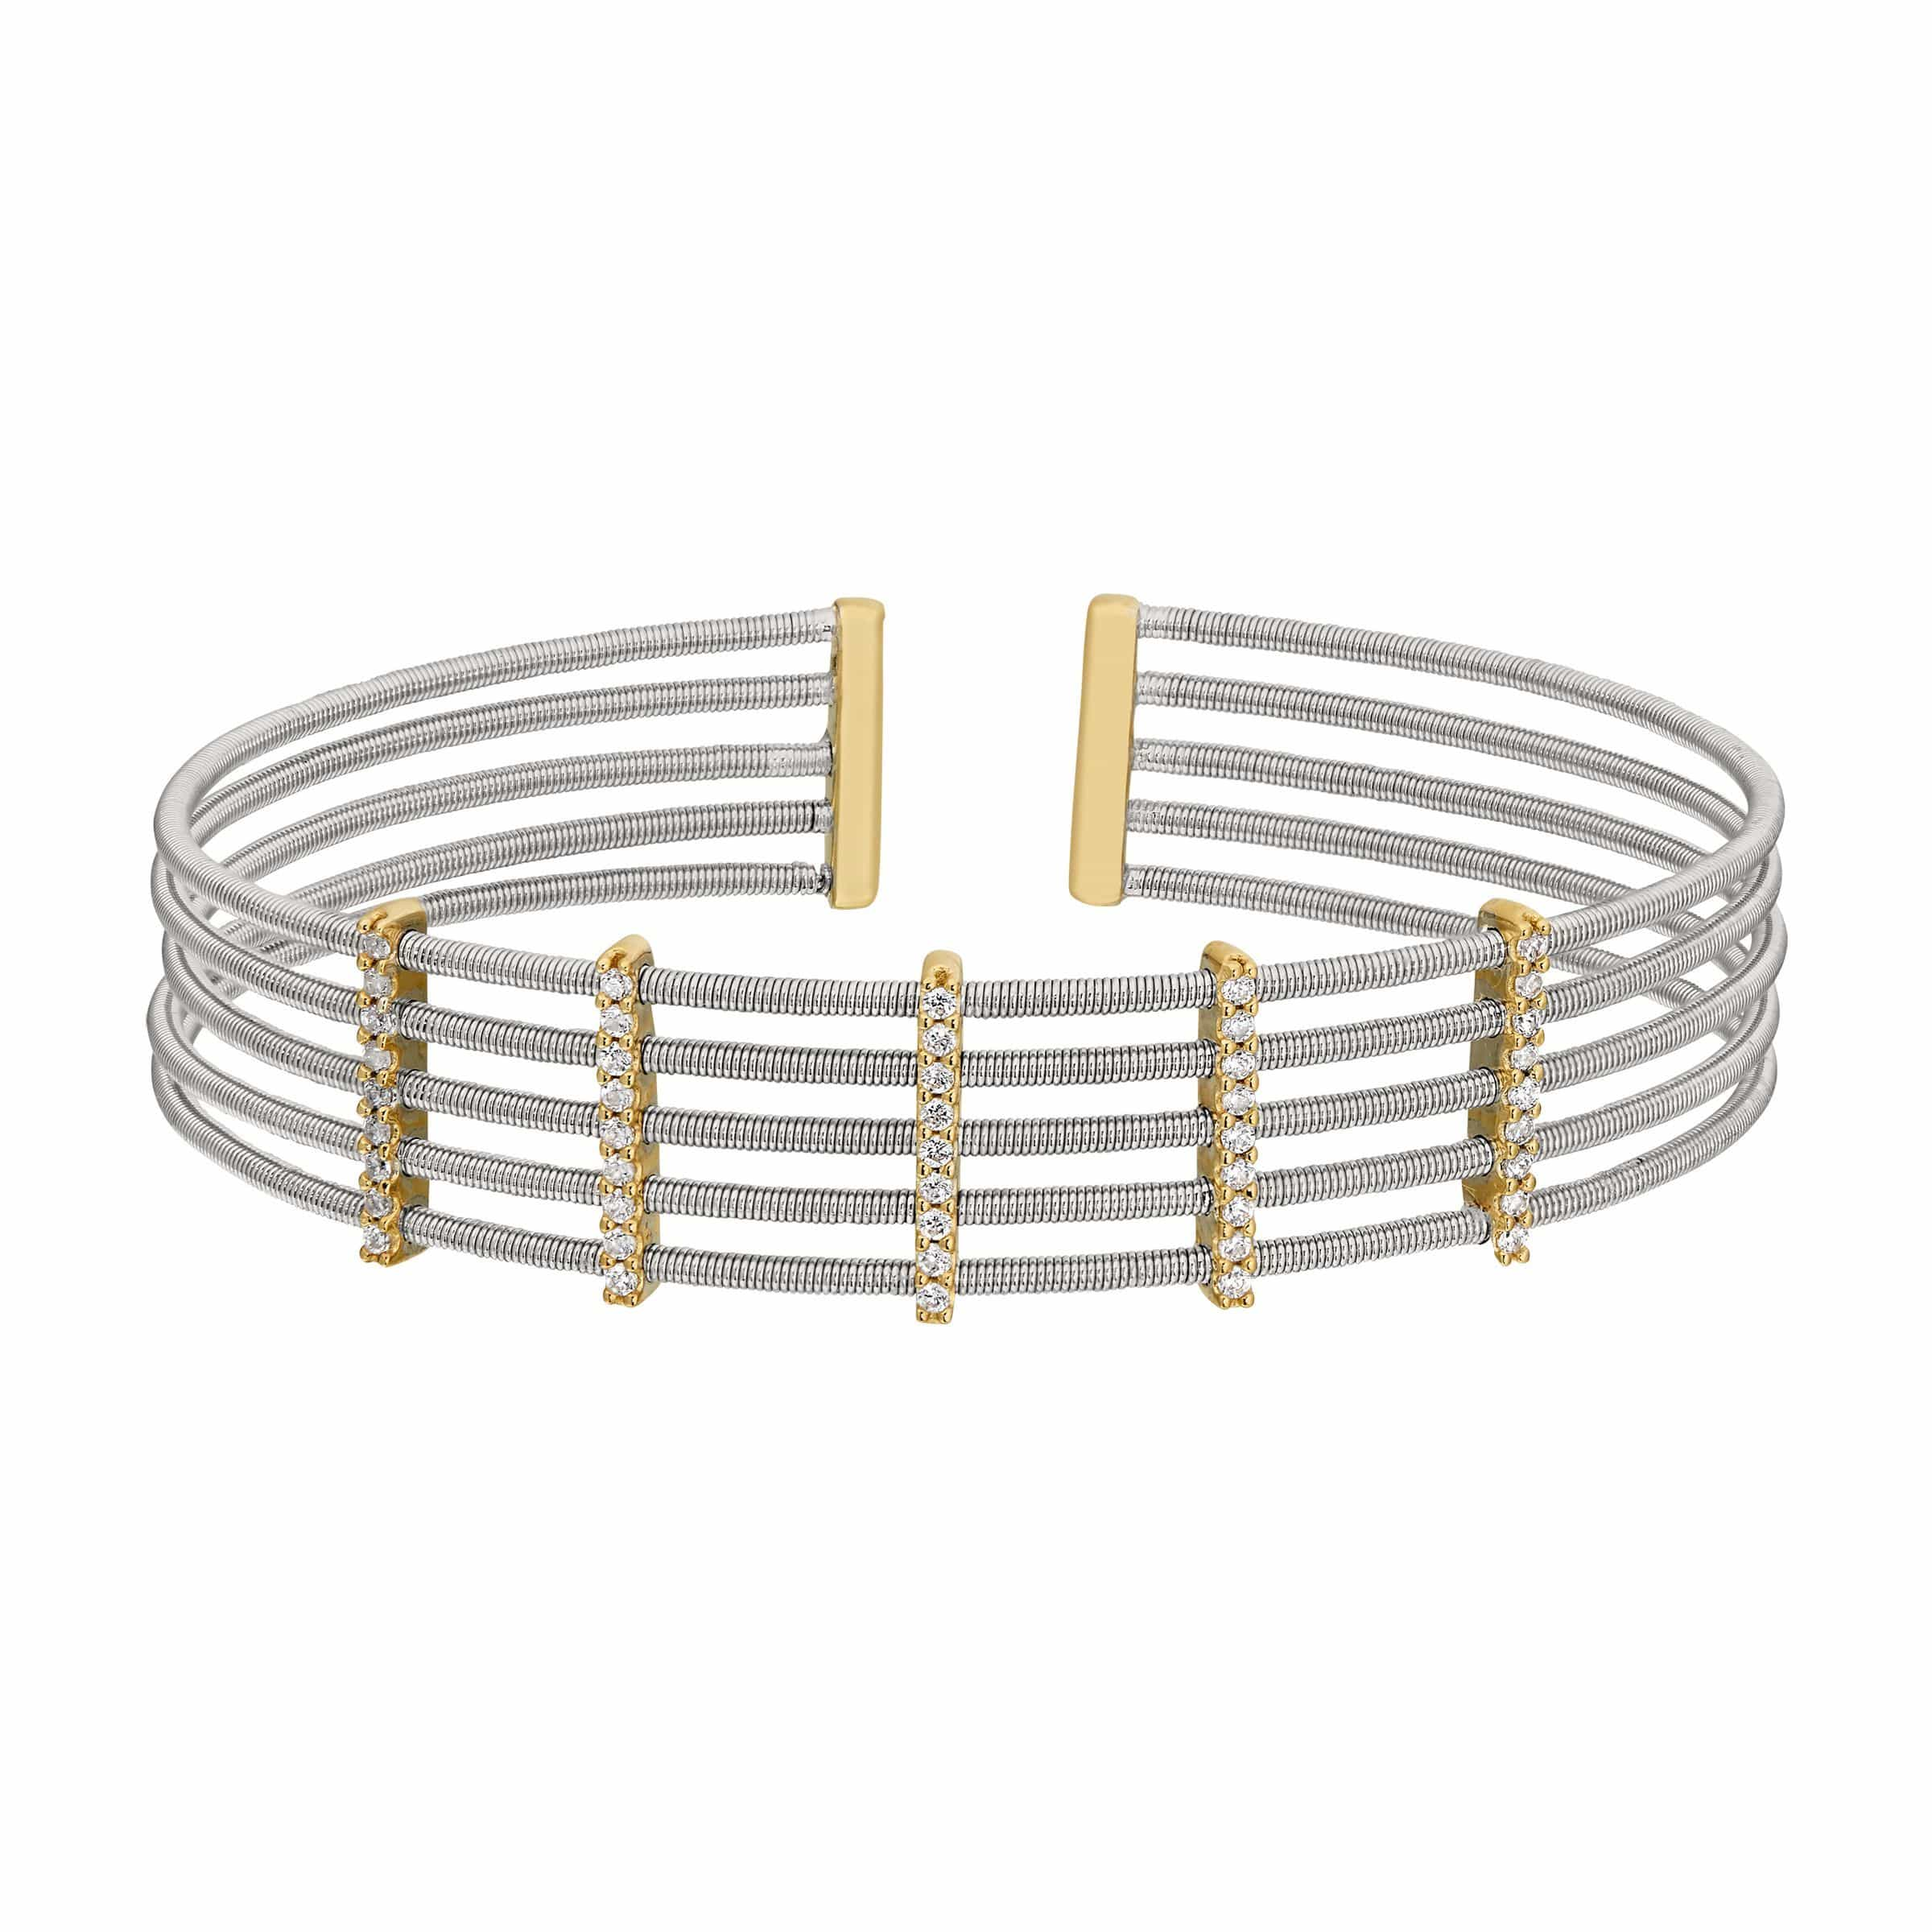 Rhodium Finish Sterling Silver Multi Cable Cuff Bracelet - LL7014B-RH/G-Kelly Waters-Renee Taylor Gallery